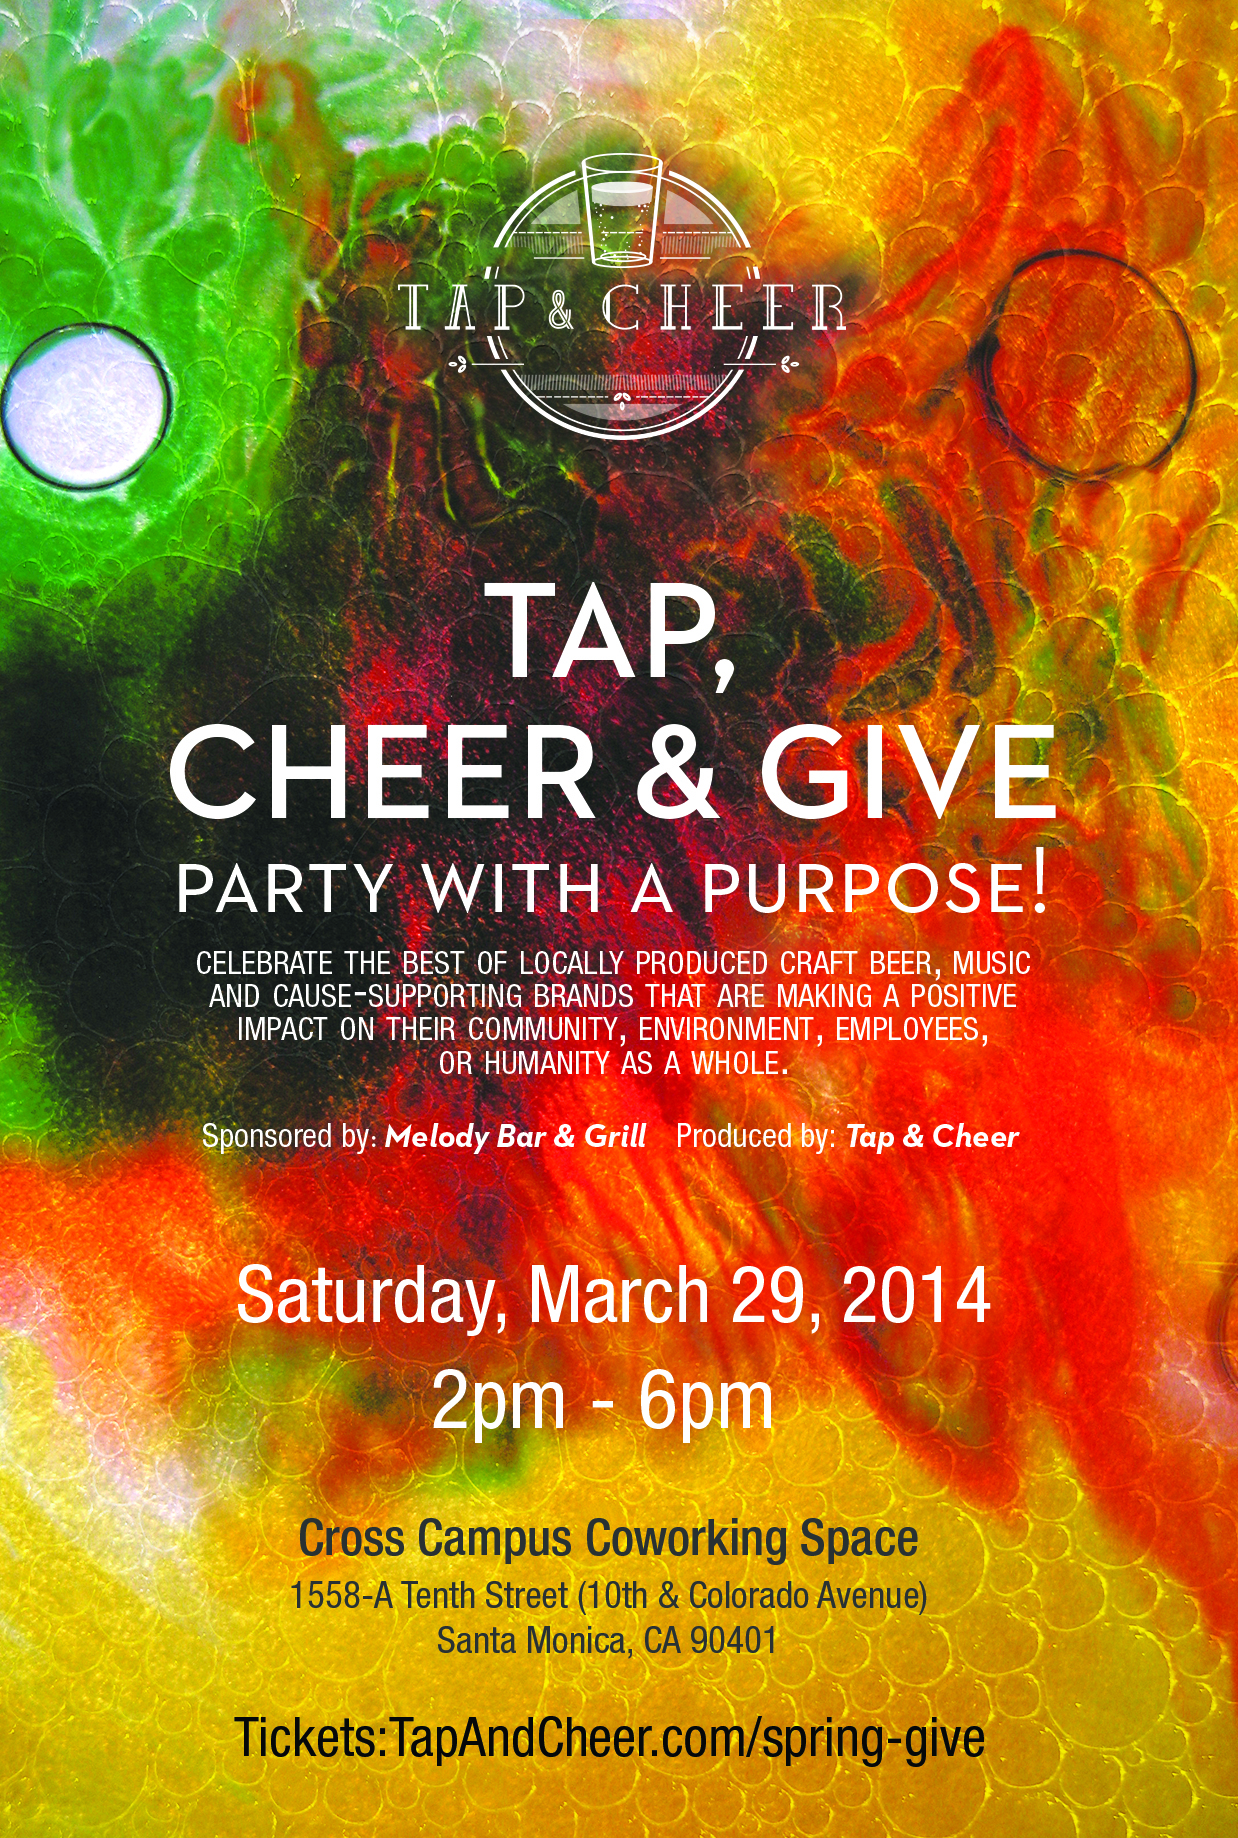 Tap Cheer & Give